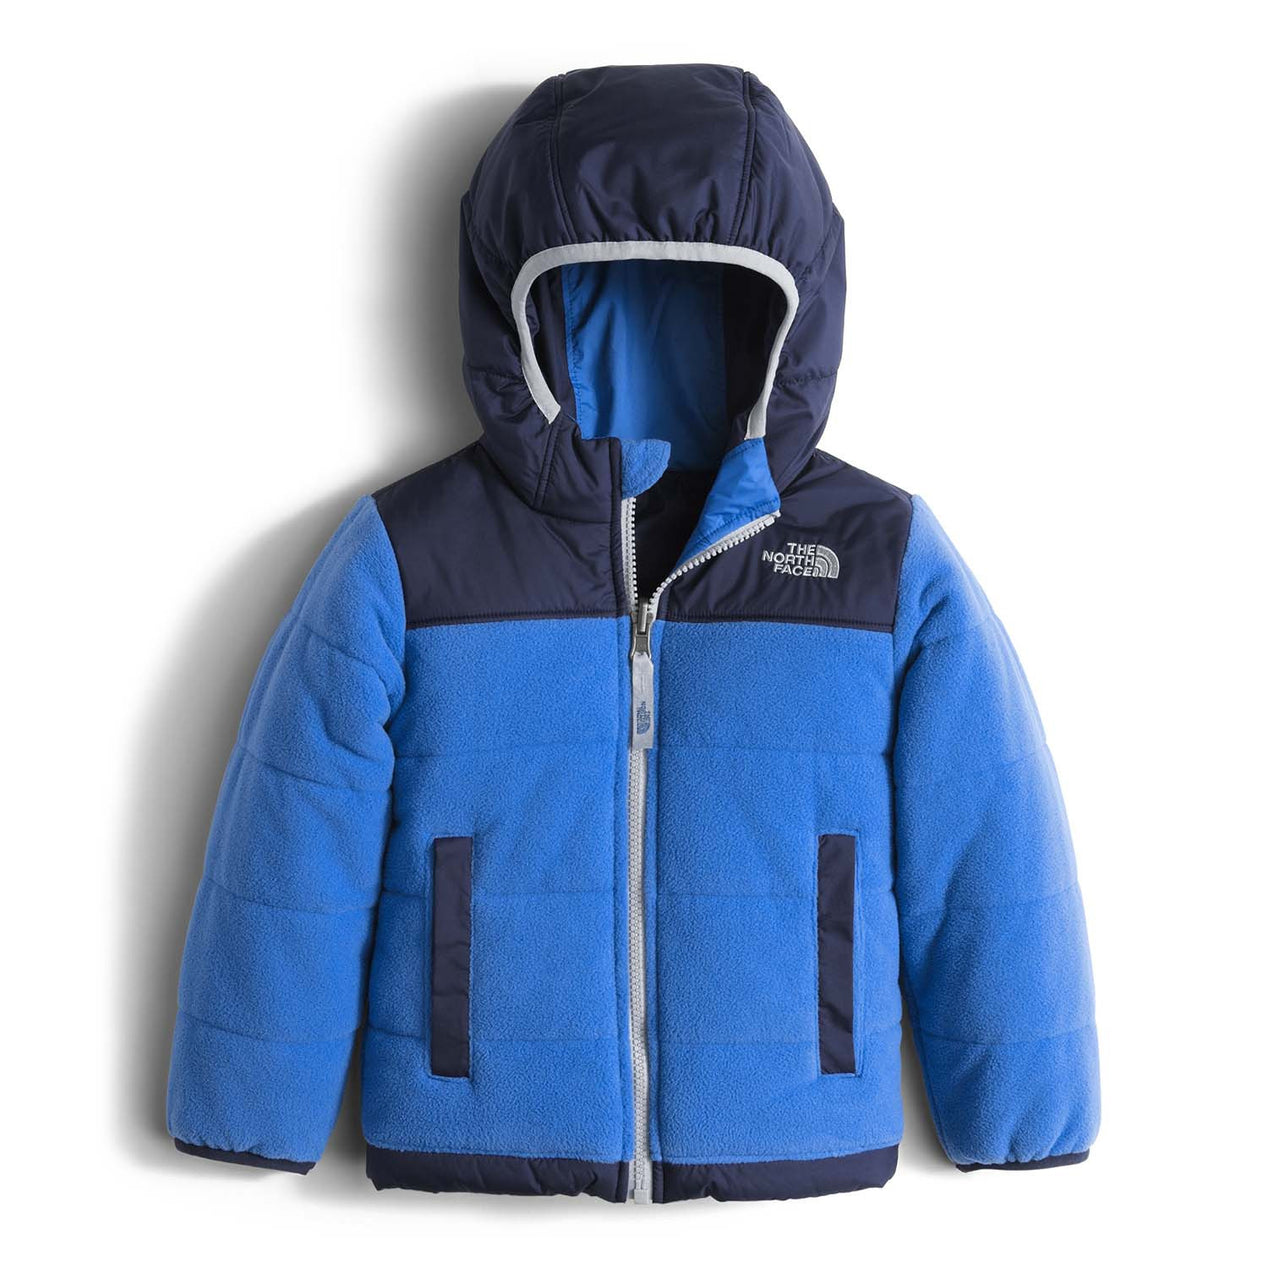 917e4064ab42 The North Face Toddler Boy s Reversible True Or False Jacket ...